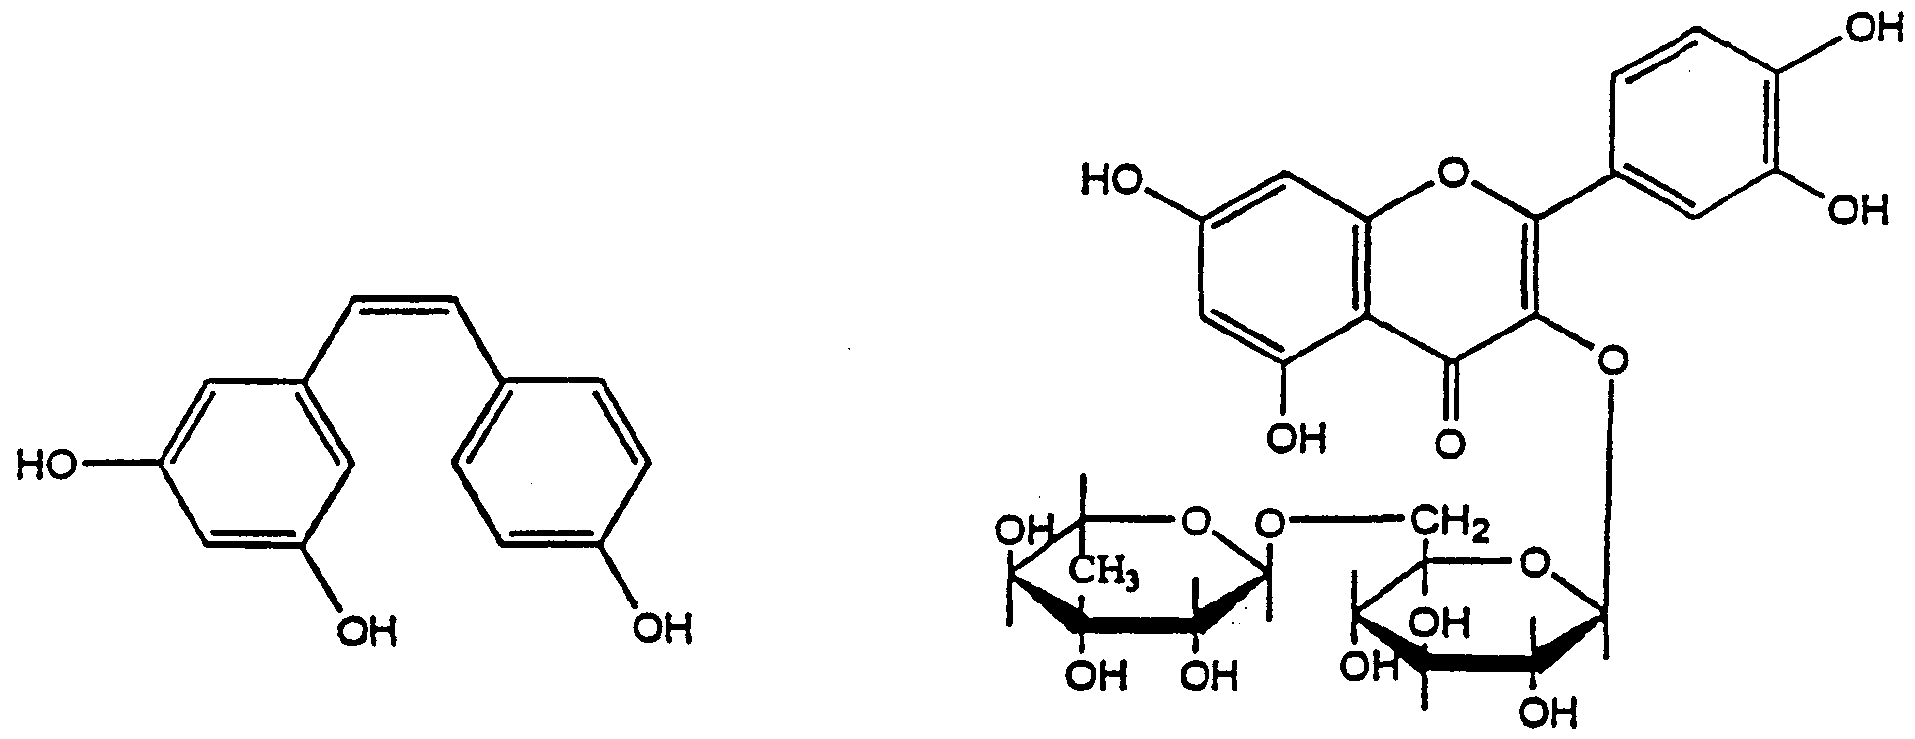 enolate chemistry synthesis of trans 1 2 dibenzoylcyclopropane One part of chemistry synthesis of dibenzalacetone by aldol condensation objective: 1 to carry out a mixed aldol condensation the deprotonation of acetone caused the enolate ion was produced as nucleophile which will be used in the synthesis of dibenzalacetone an enolate ion was.